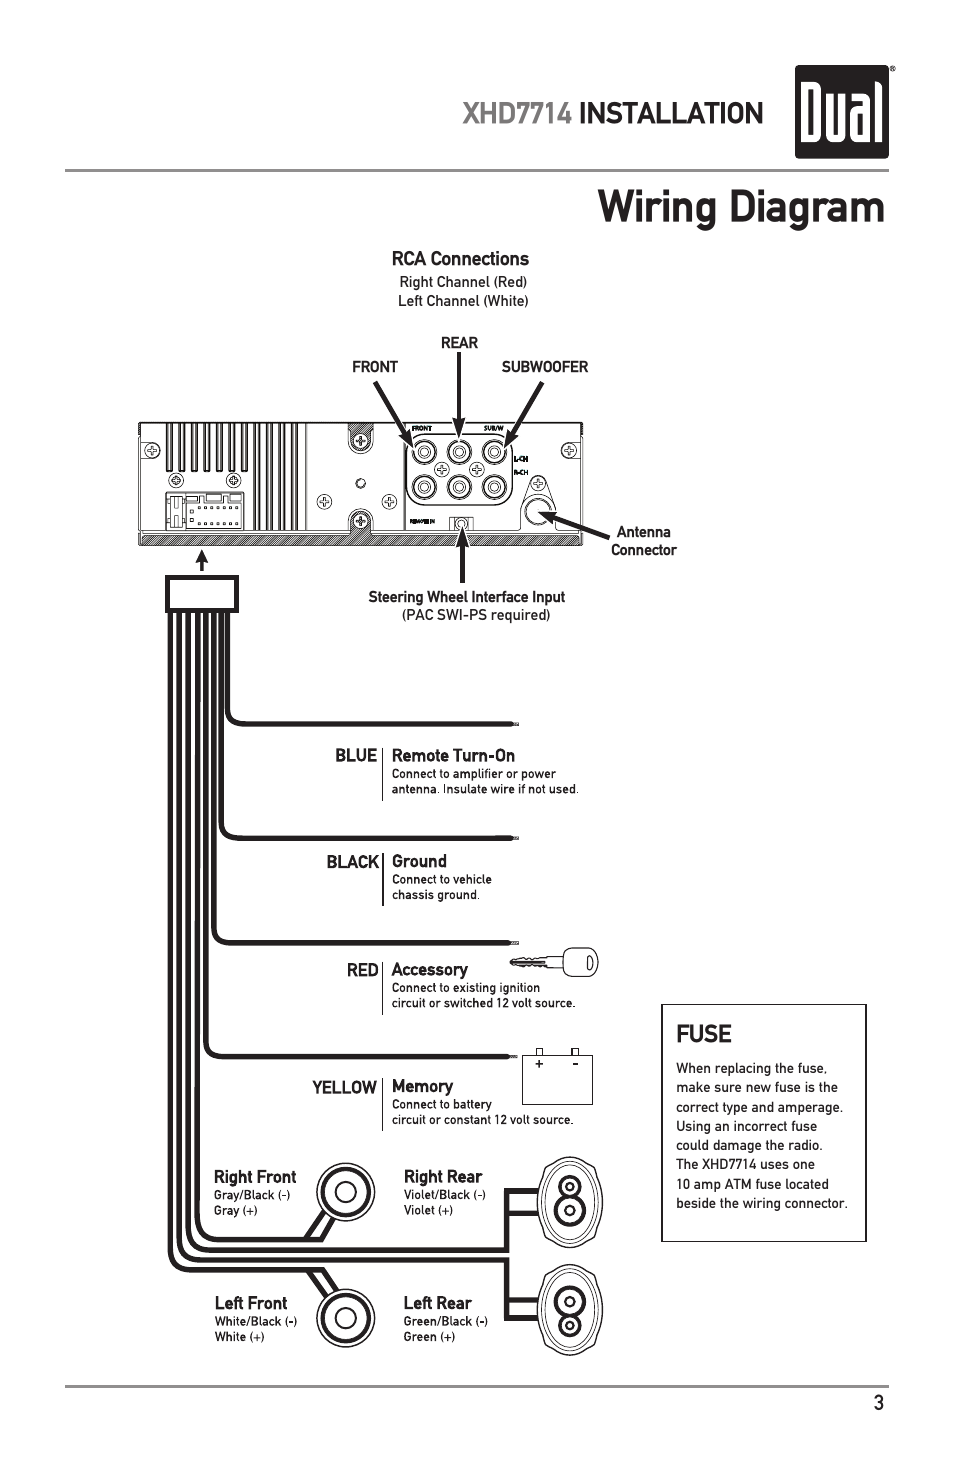 hight resolution of wiring diagram xhd7714 installation fuse dual electronics xhd7714 user manual page 3